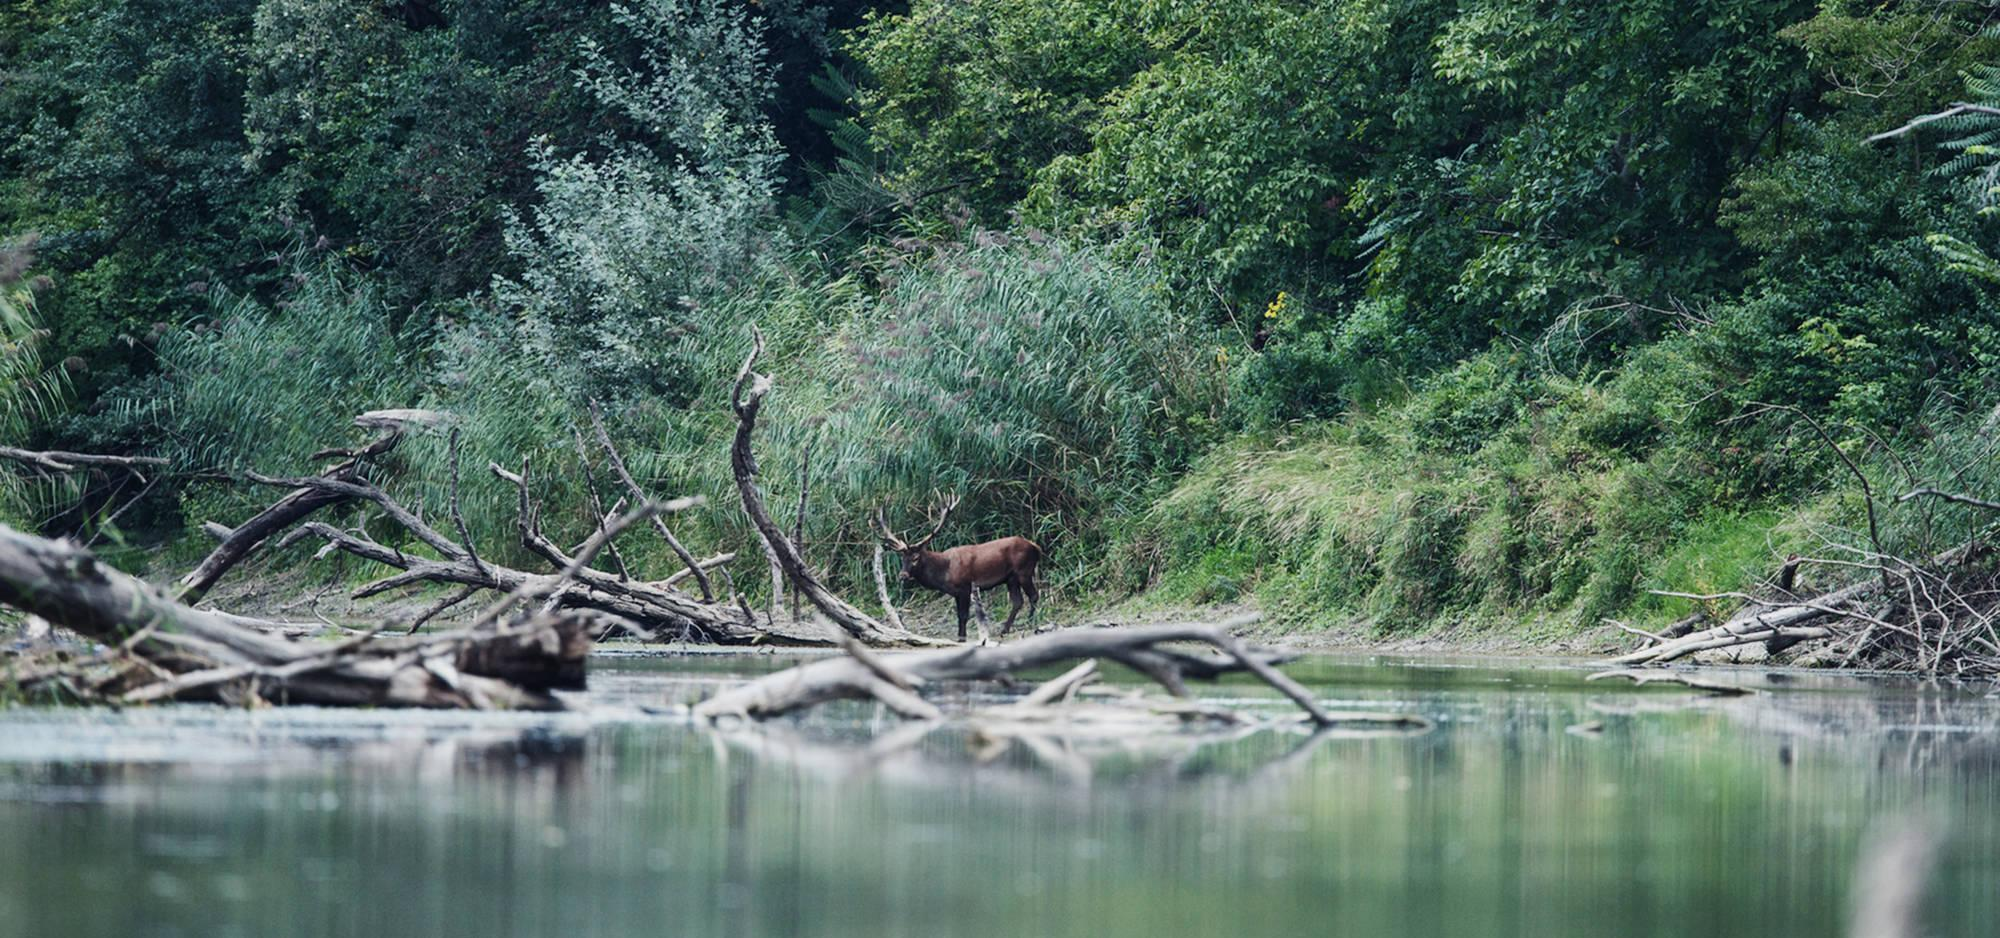 A deer by the river